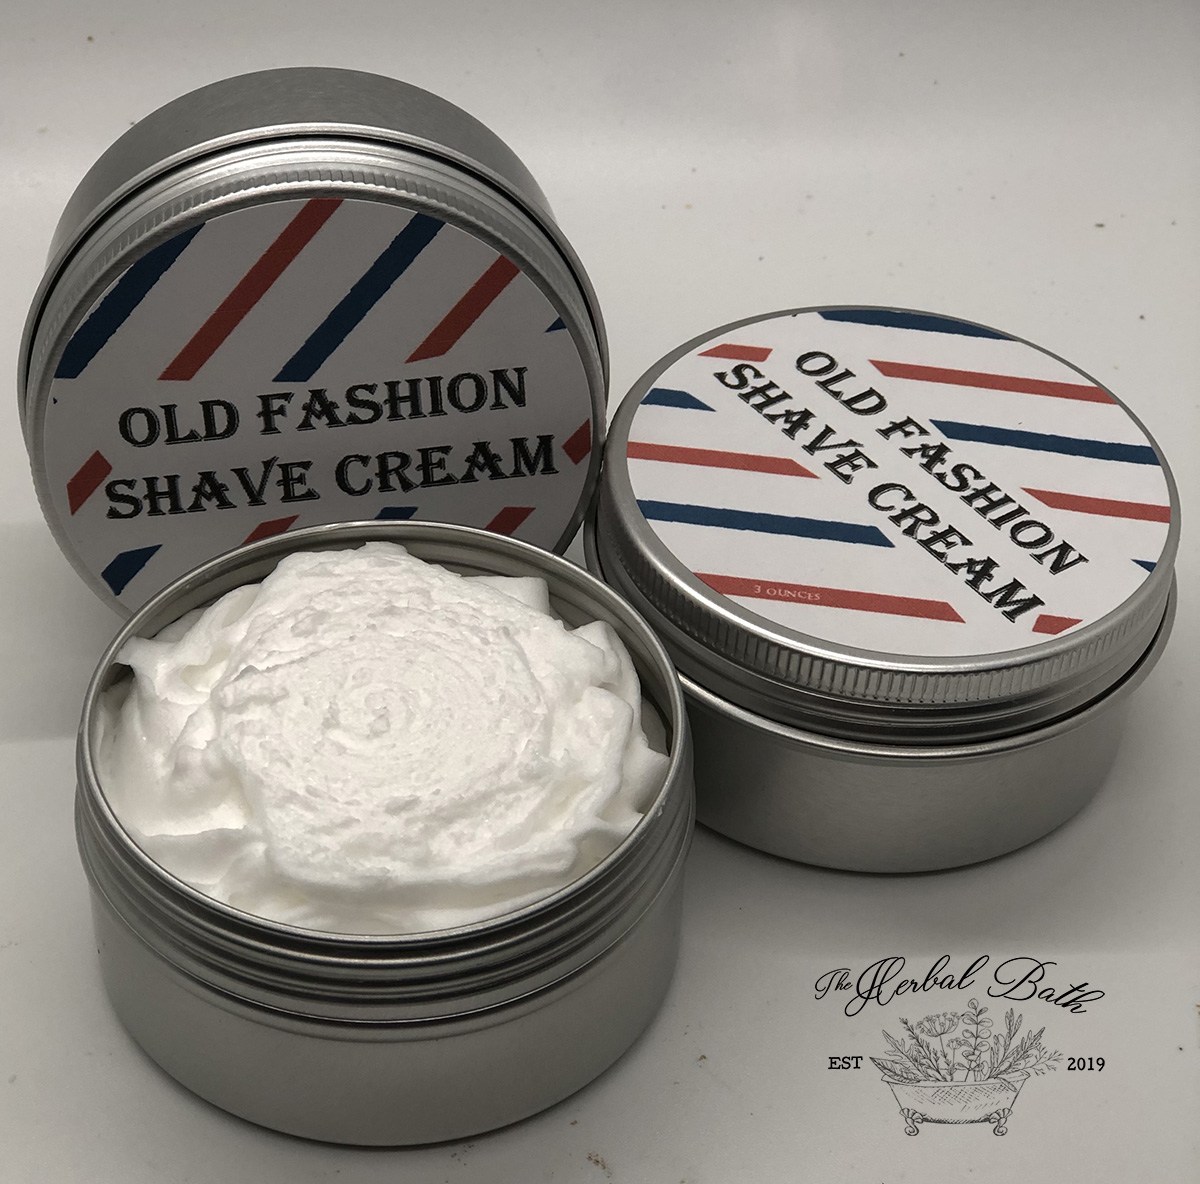 Old Fashion Shave Cream gift set